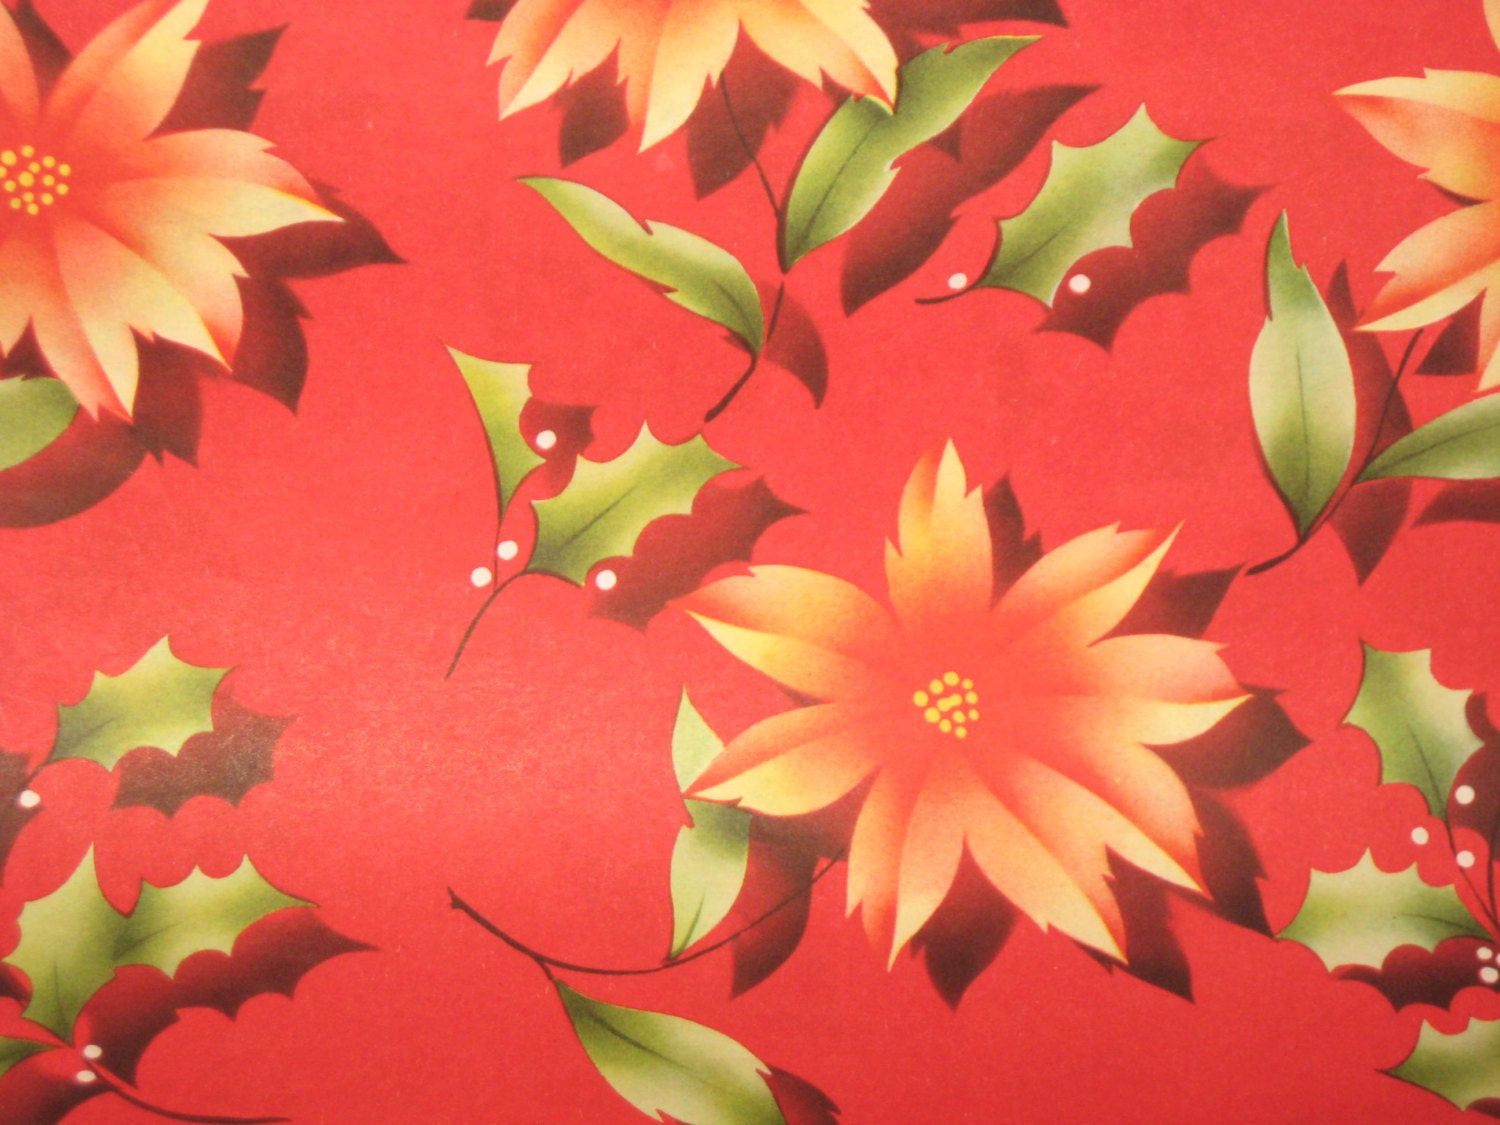 1930 Vintage Christmas Wrapping Paper Poinsettias Holly